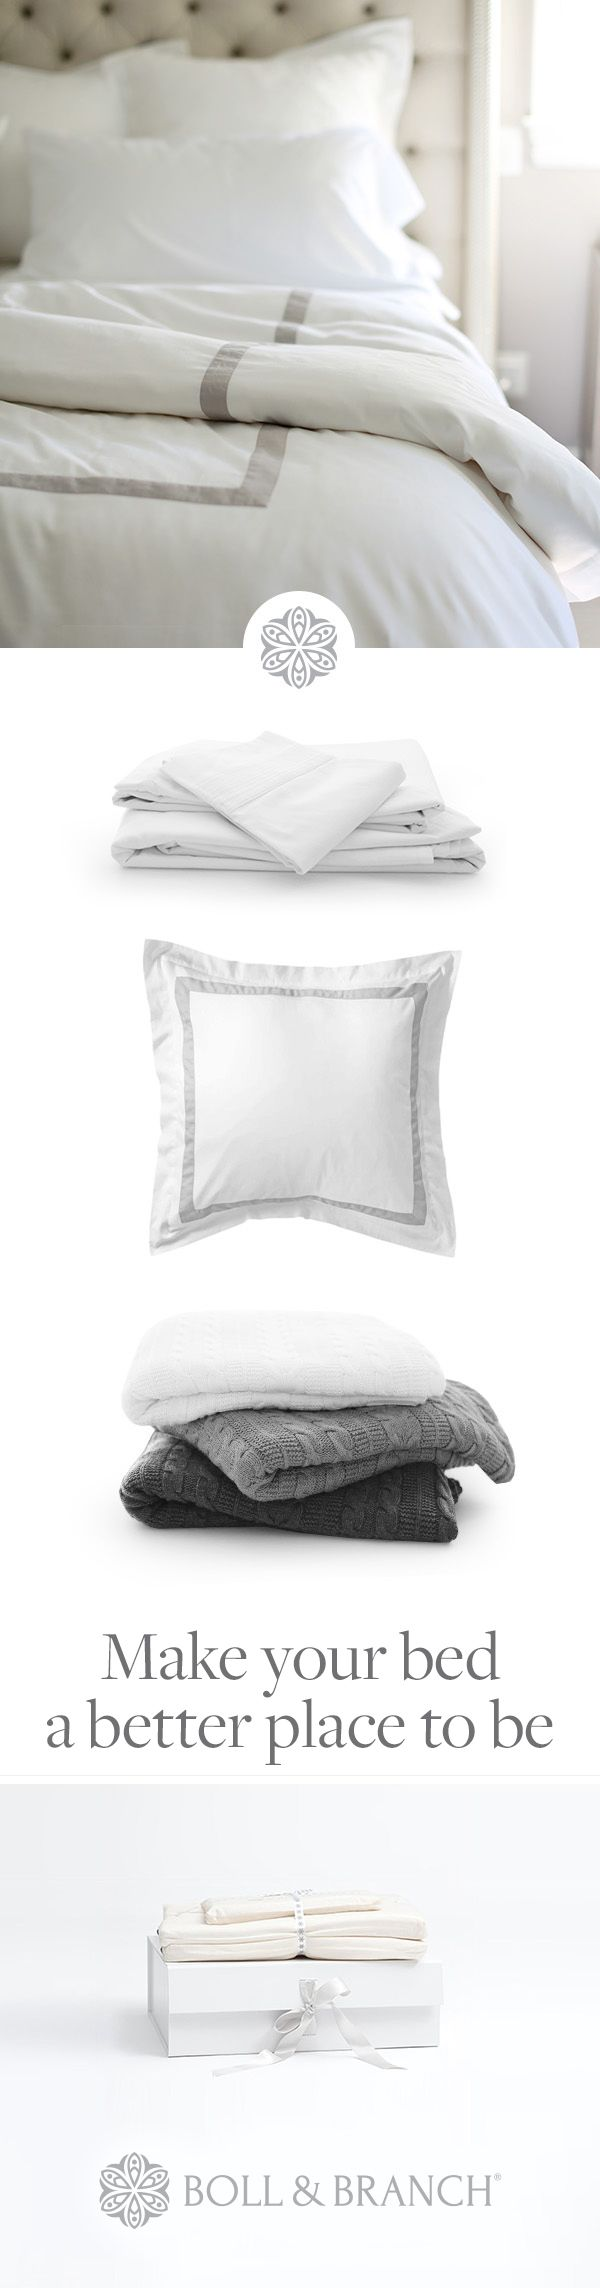 Beautiful bedding with a beautiful story. Made from the finest, ultra-soft organic cotton and the first to be certified #FairTrade because luxury should always feel good. Boll & Branch is proud to be ethically made and fairly priced, without the middleman markups.